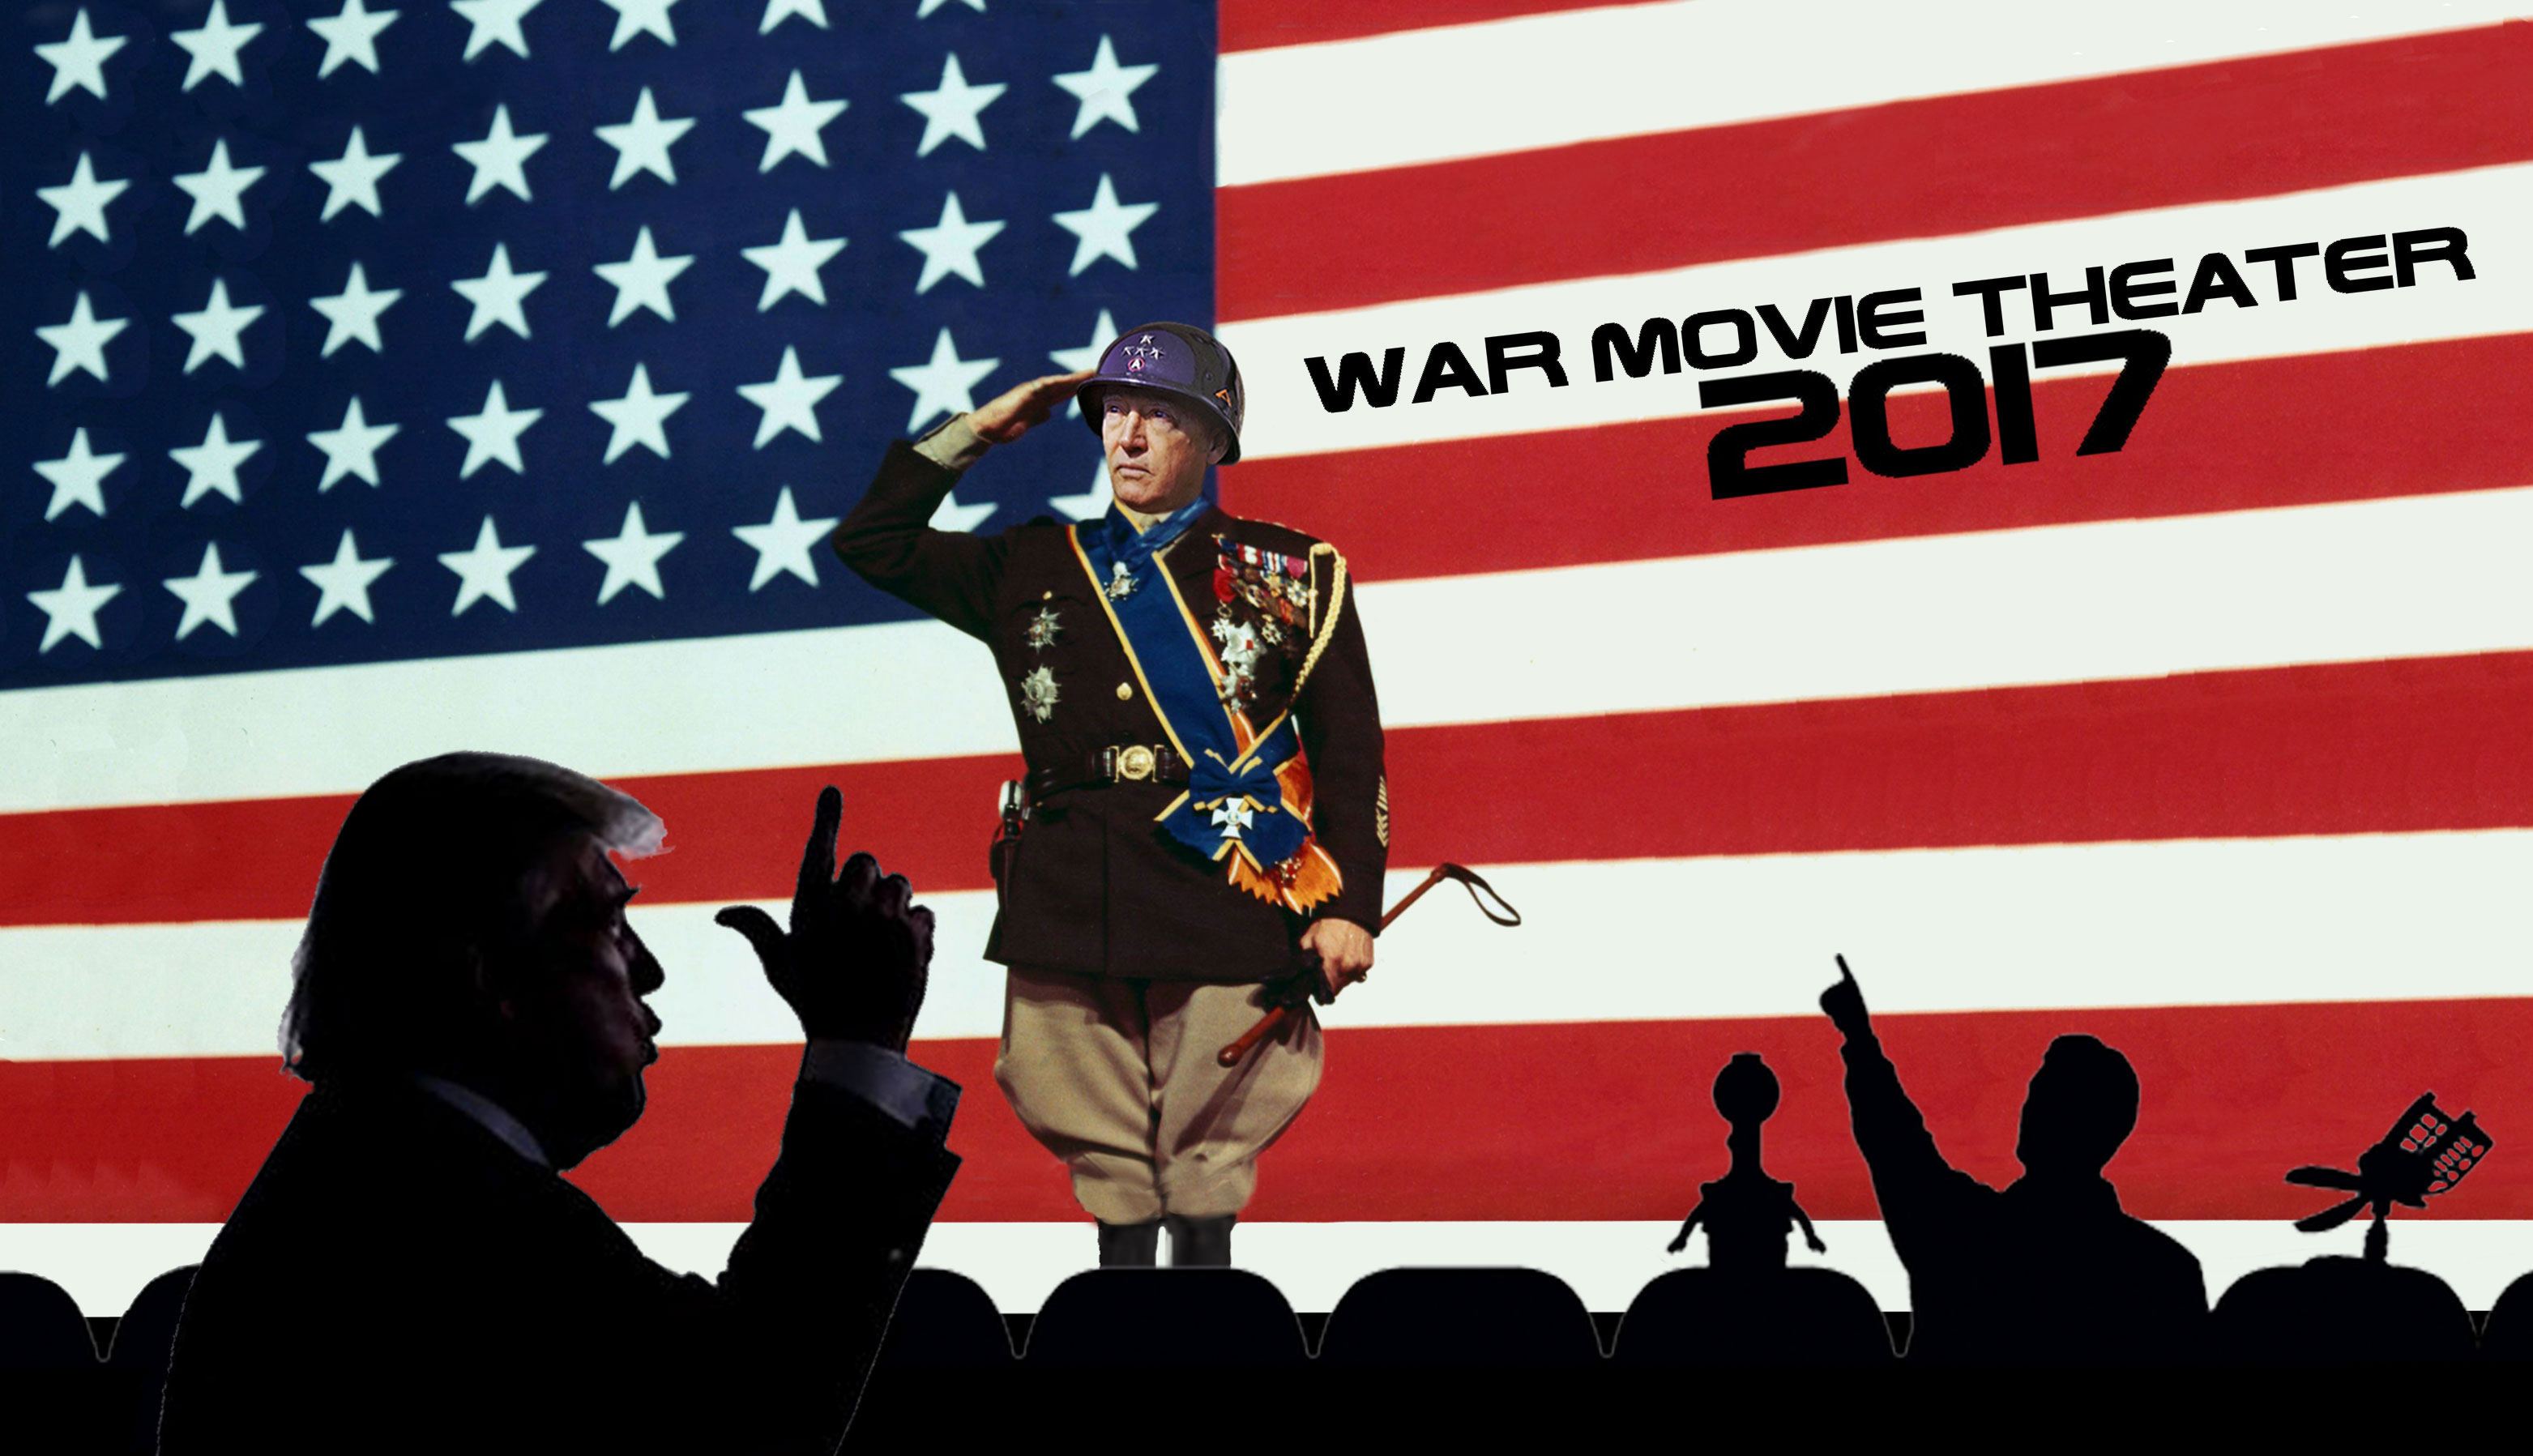 WAR MOVIE THEATER 2017